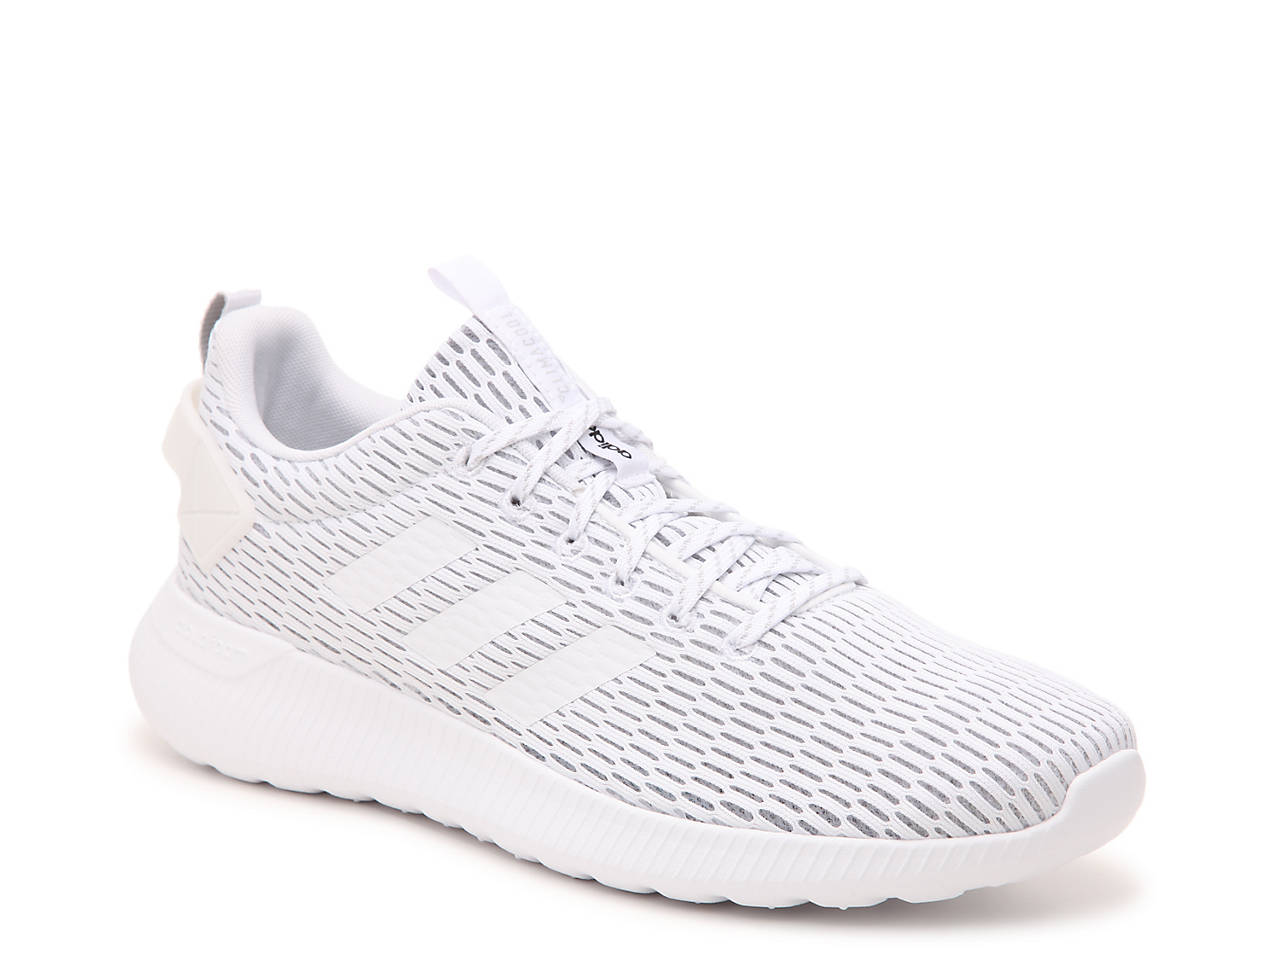 ADIDAS NEO LITE RACER WOMENS : Adidas outlet sale Shoes